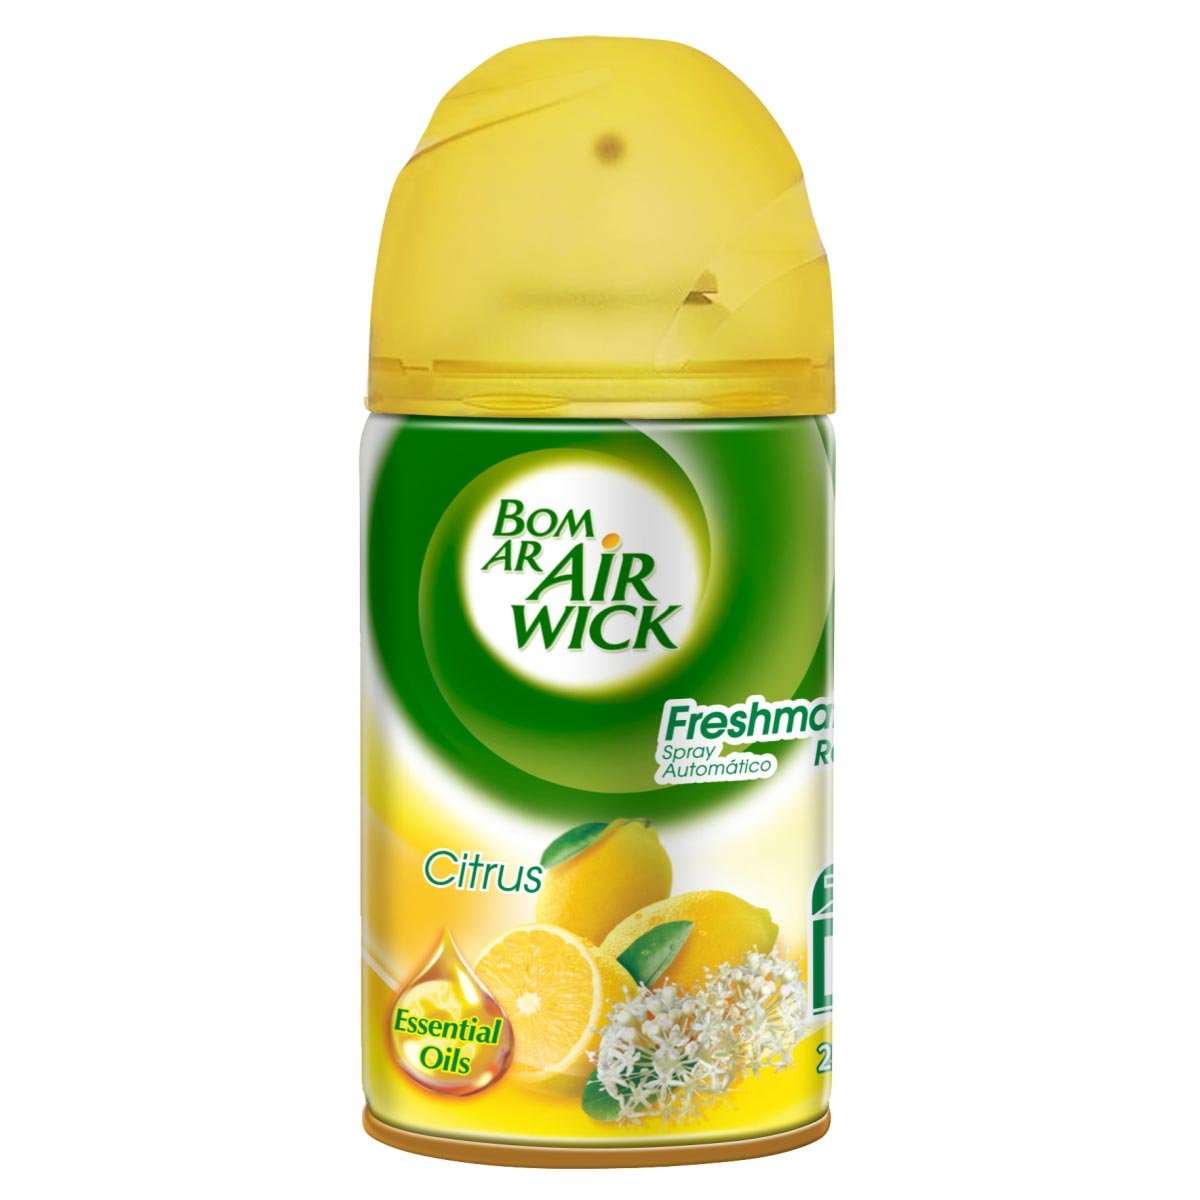 REFIL PURIFICADOR AR CITRUS 250ML P/ FRESH MATIC BOM AR